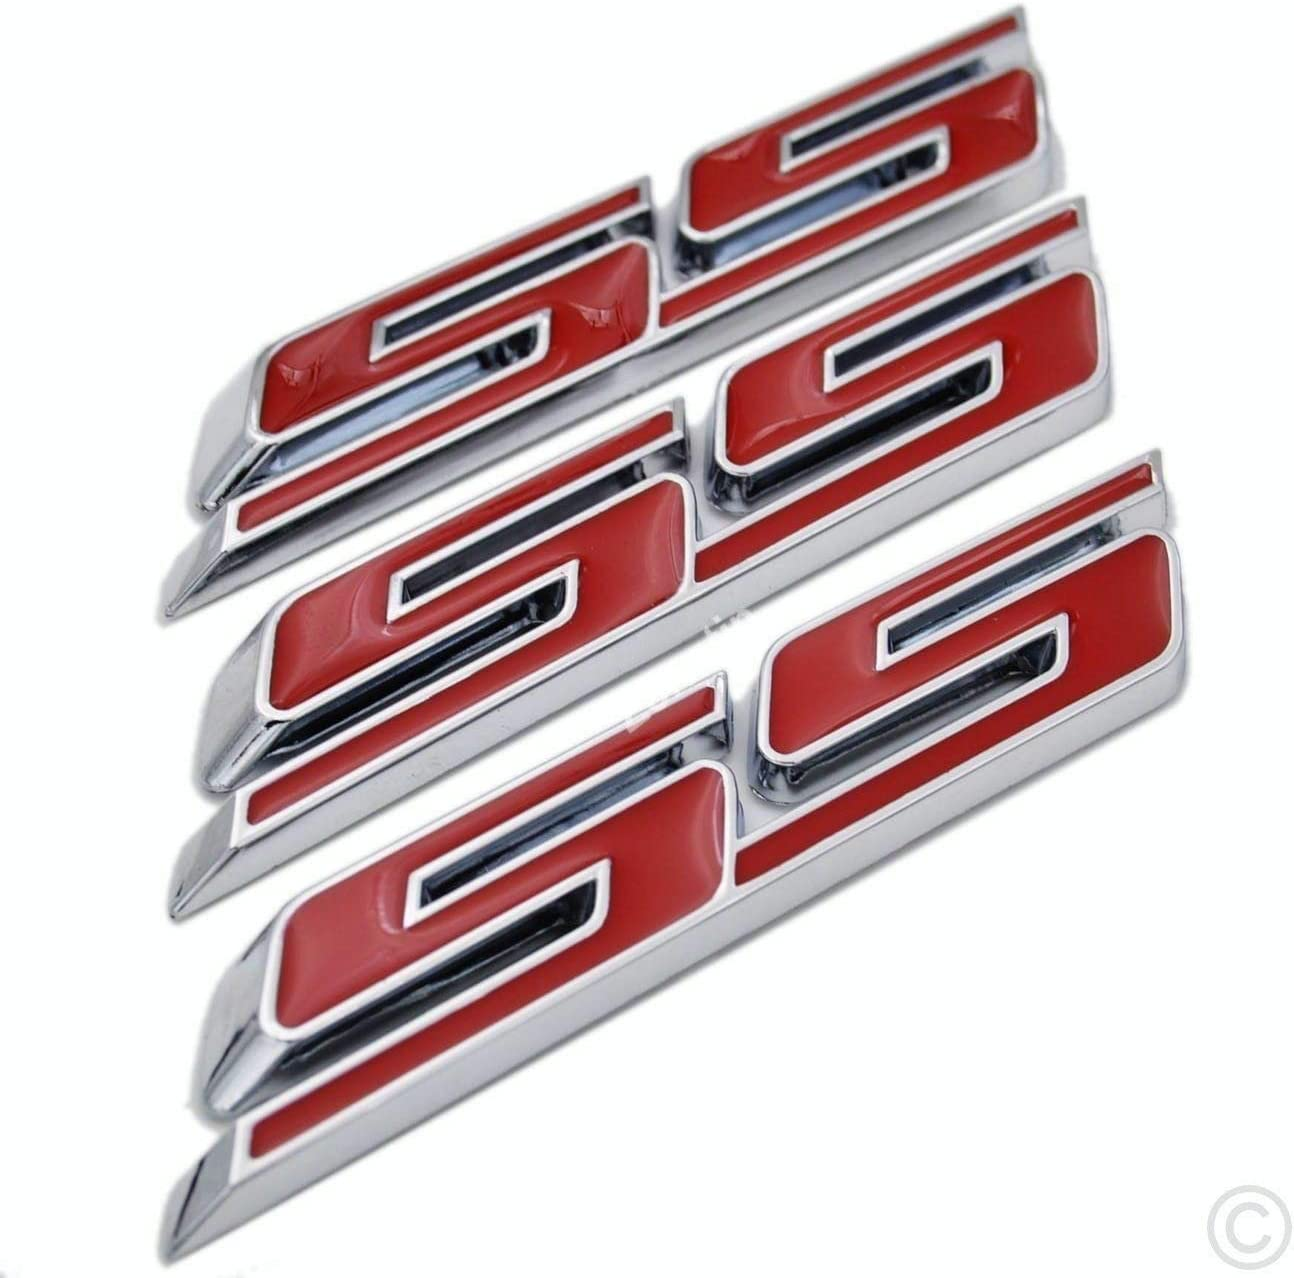 3x SS Letter Grille Fender Trunk Emblem Badge Replacement for Camaro Impala 2010-2015 Red